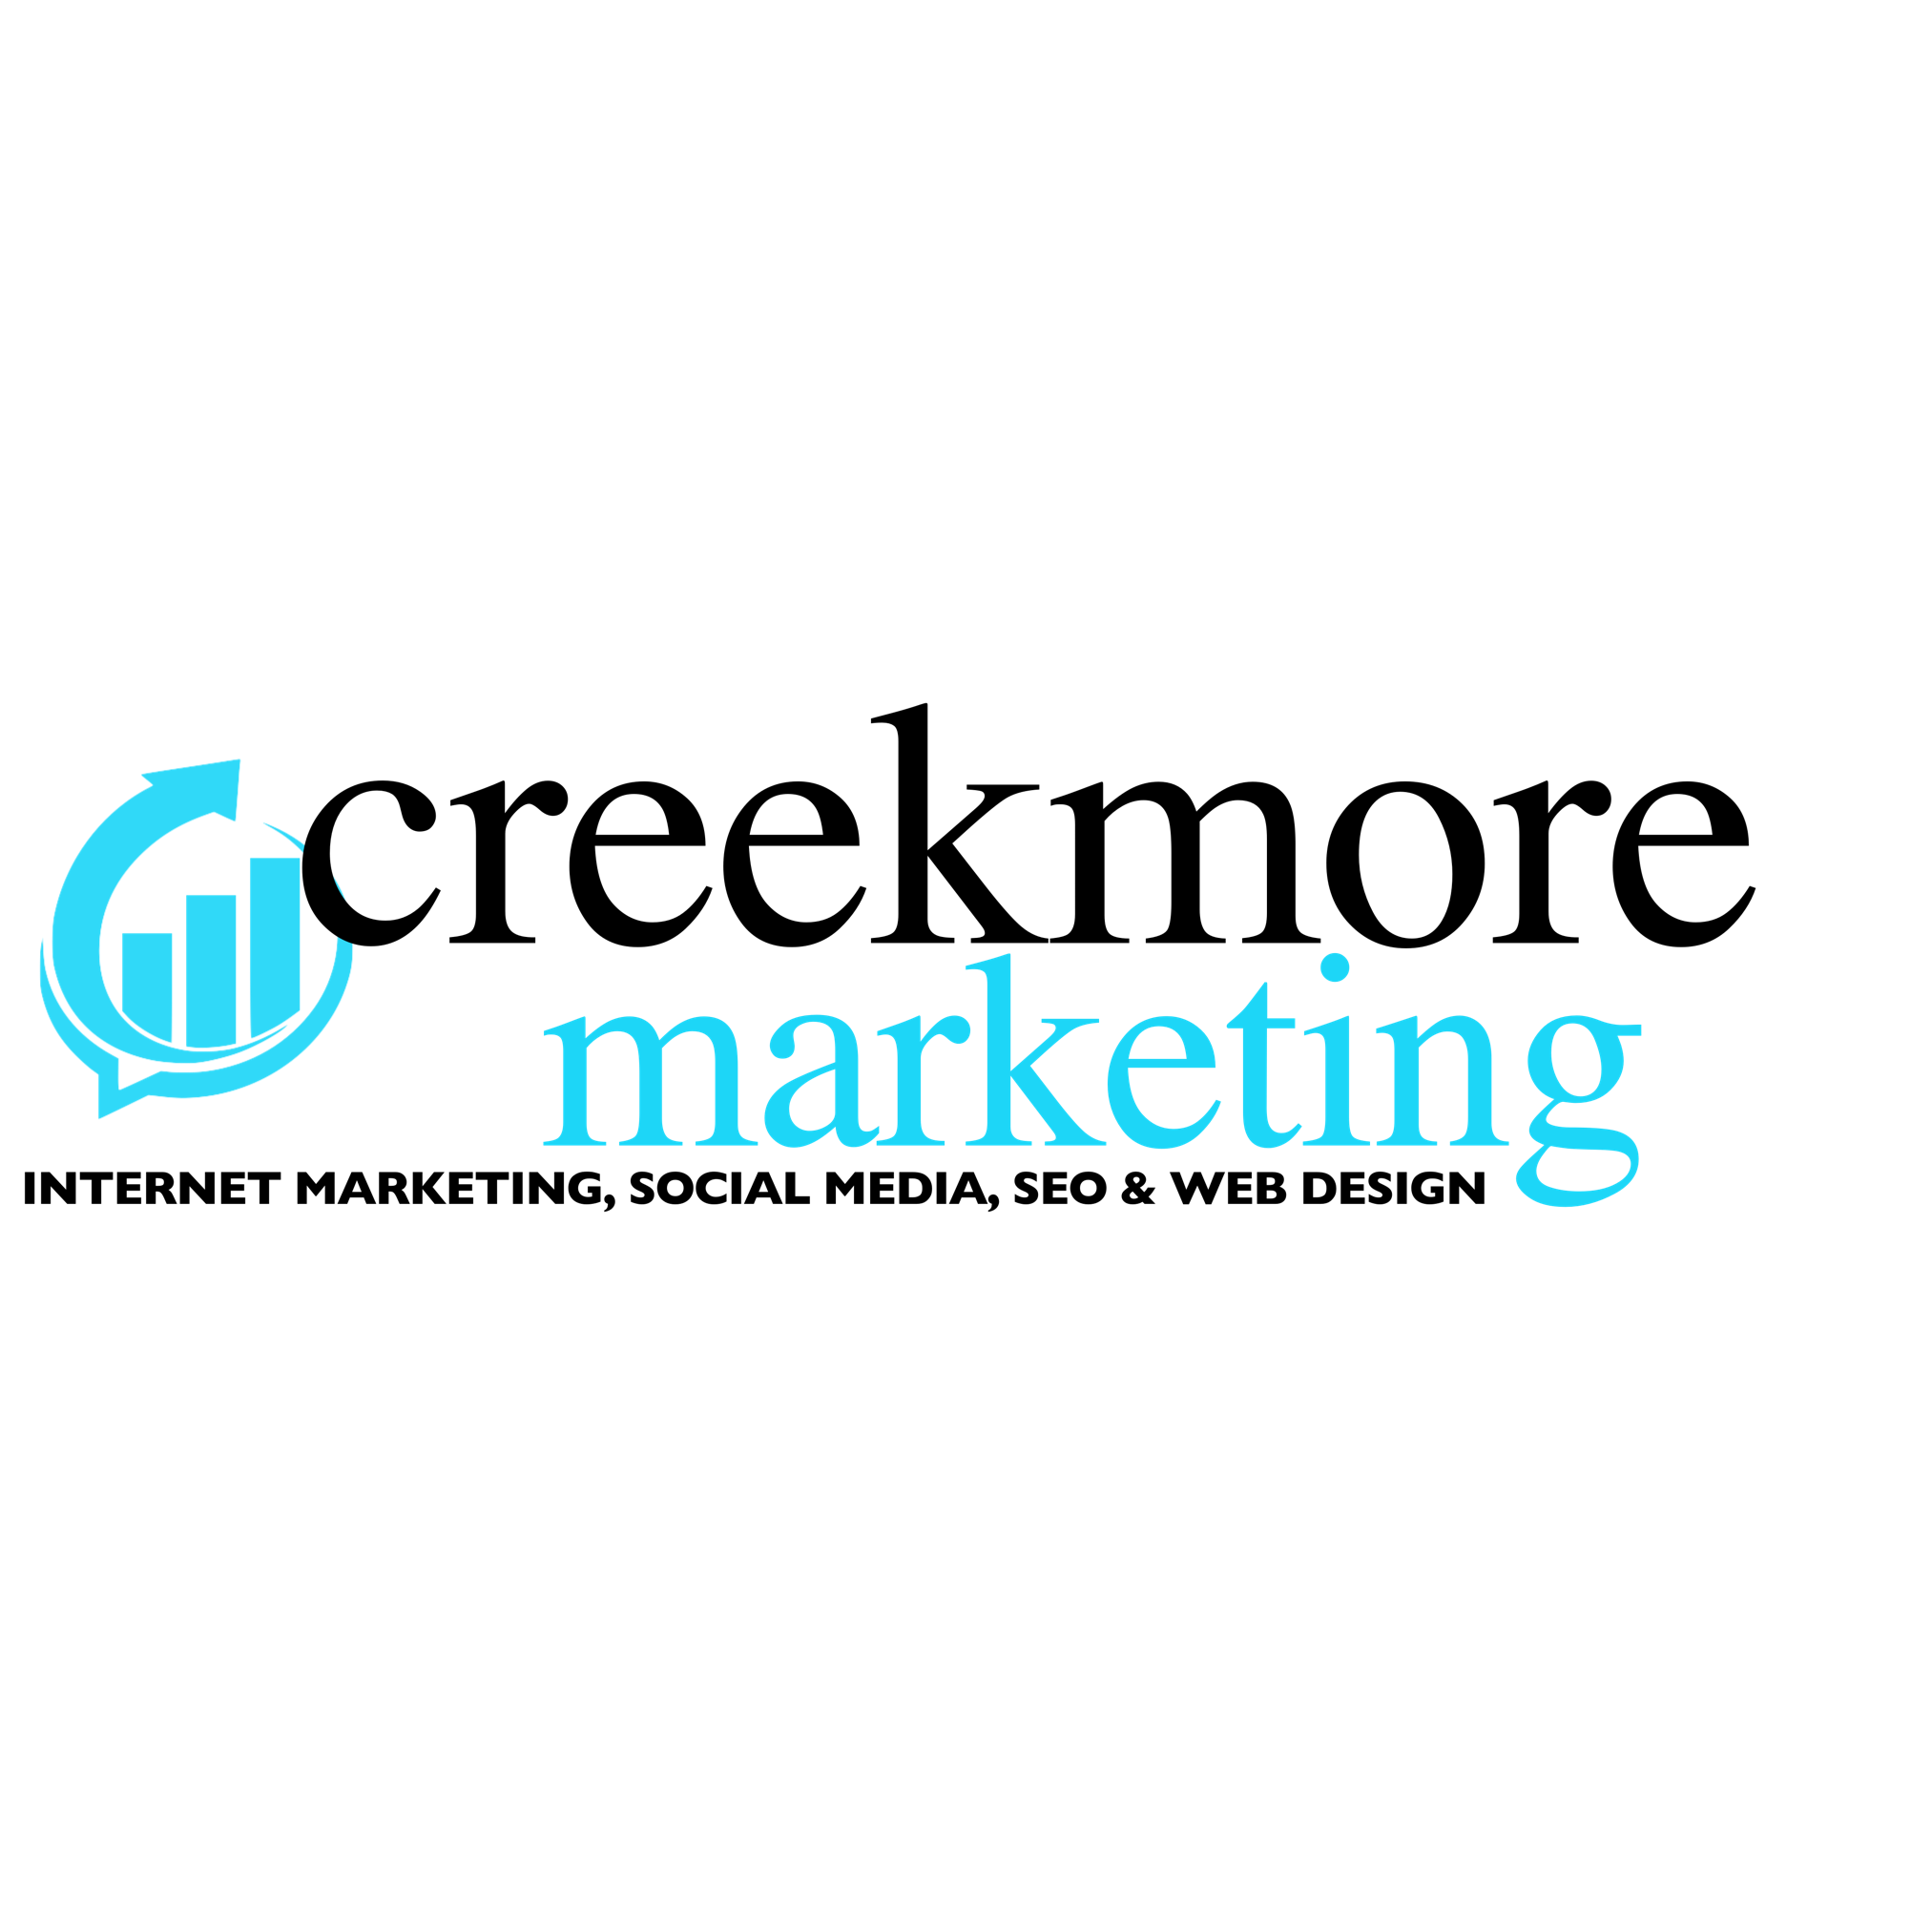 Creekmore Marketing & Web Design